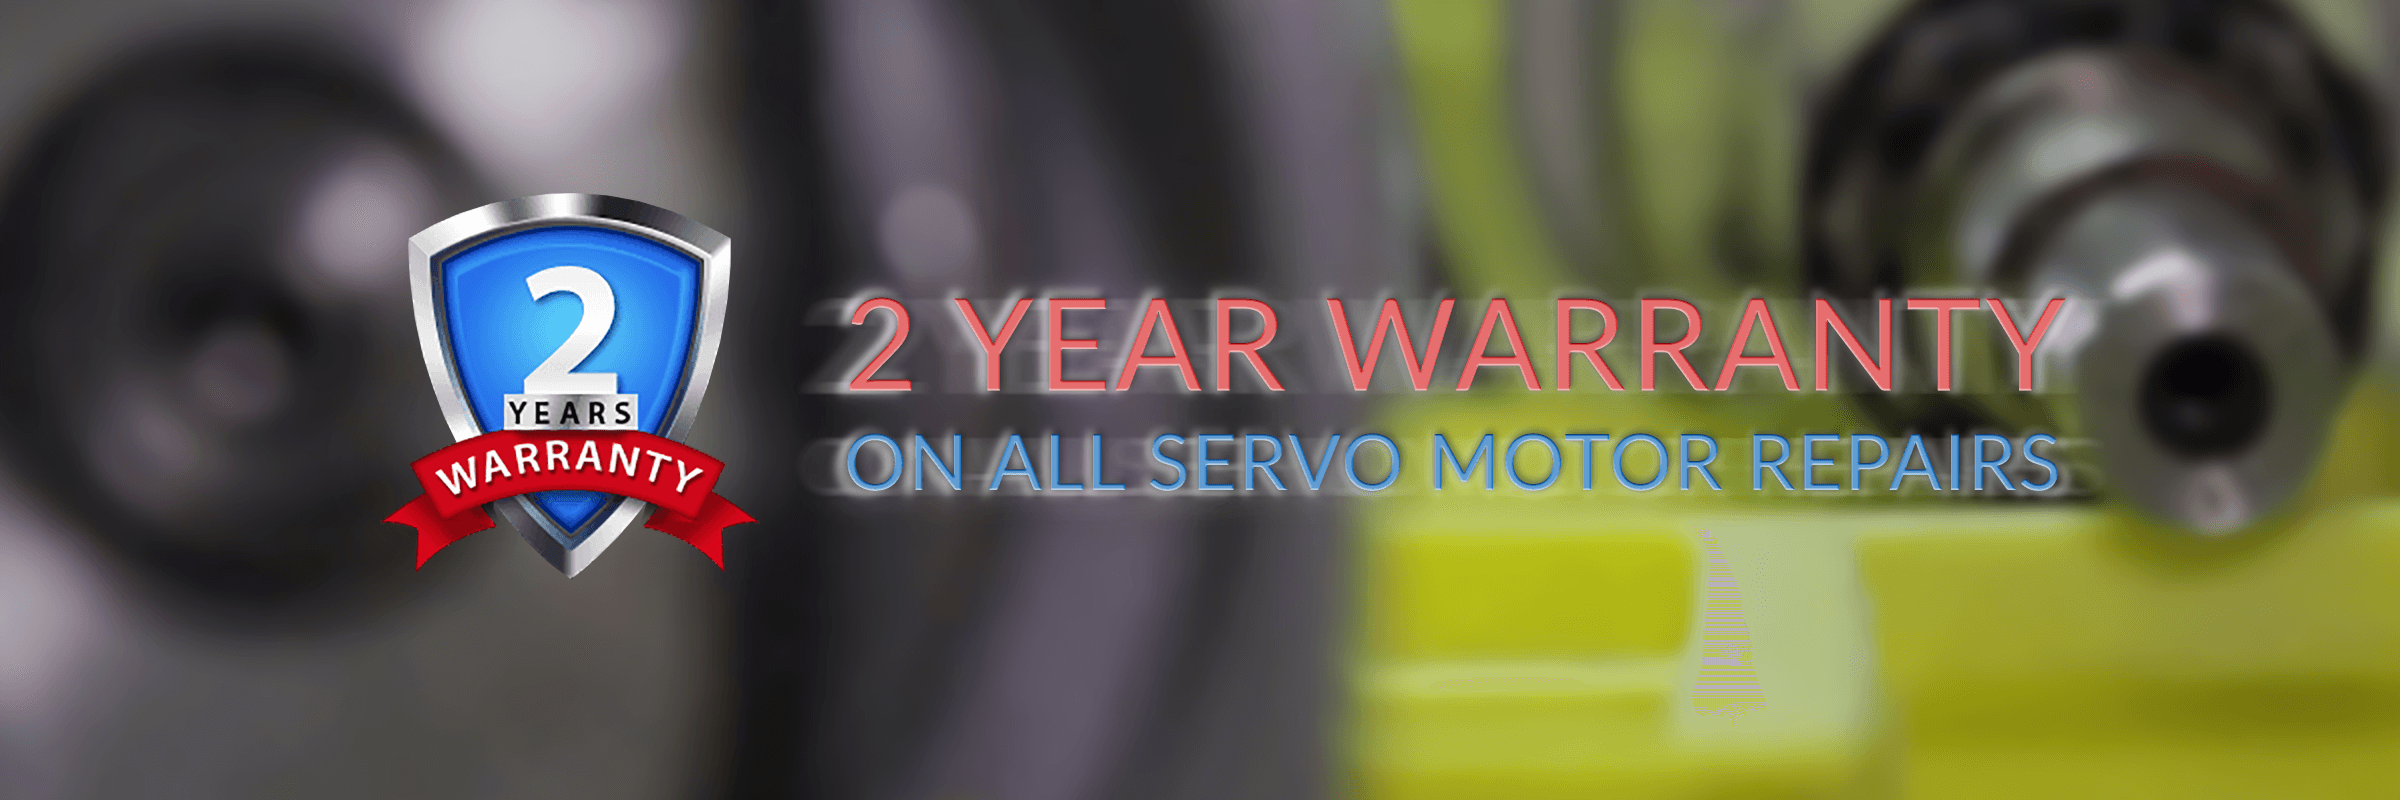 2 year warranty on all servo motor repairs